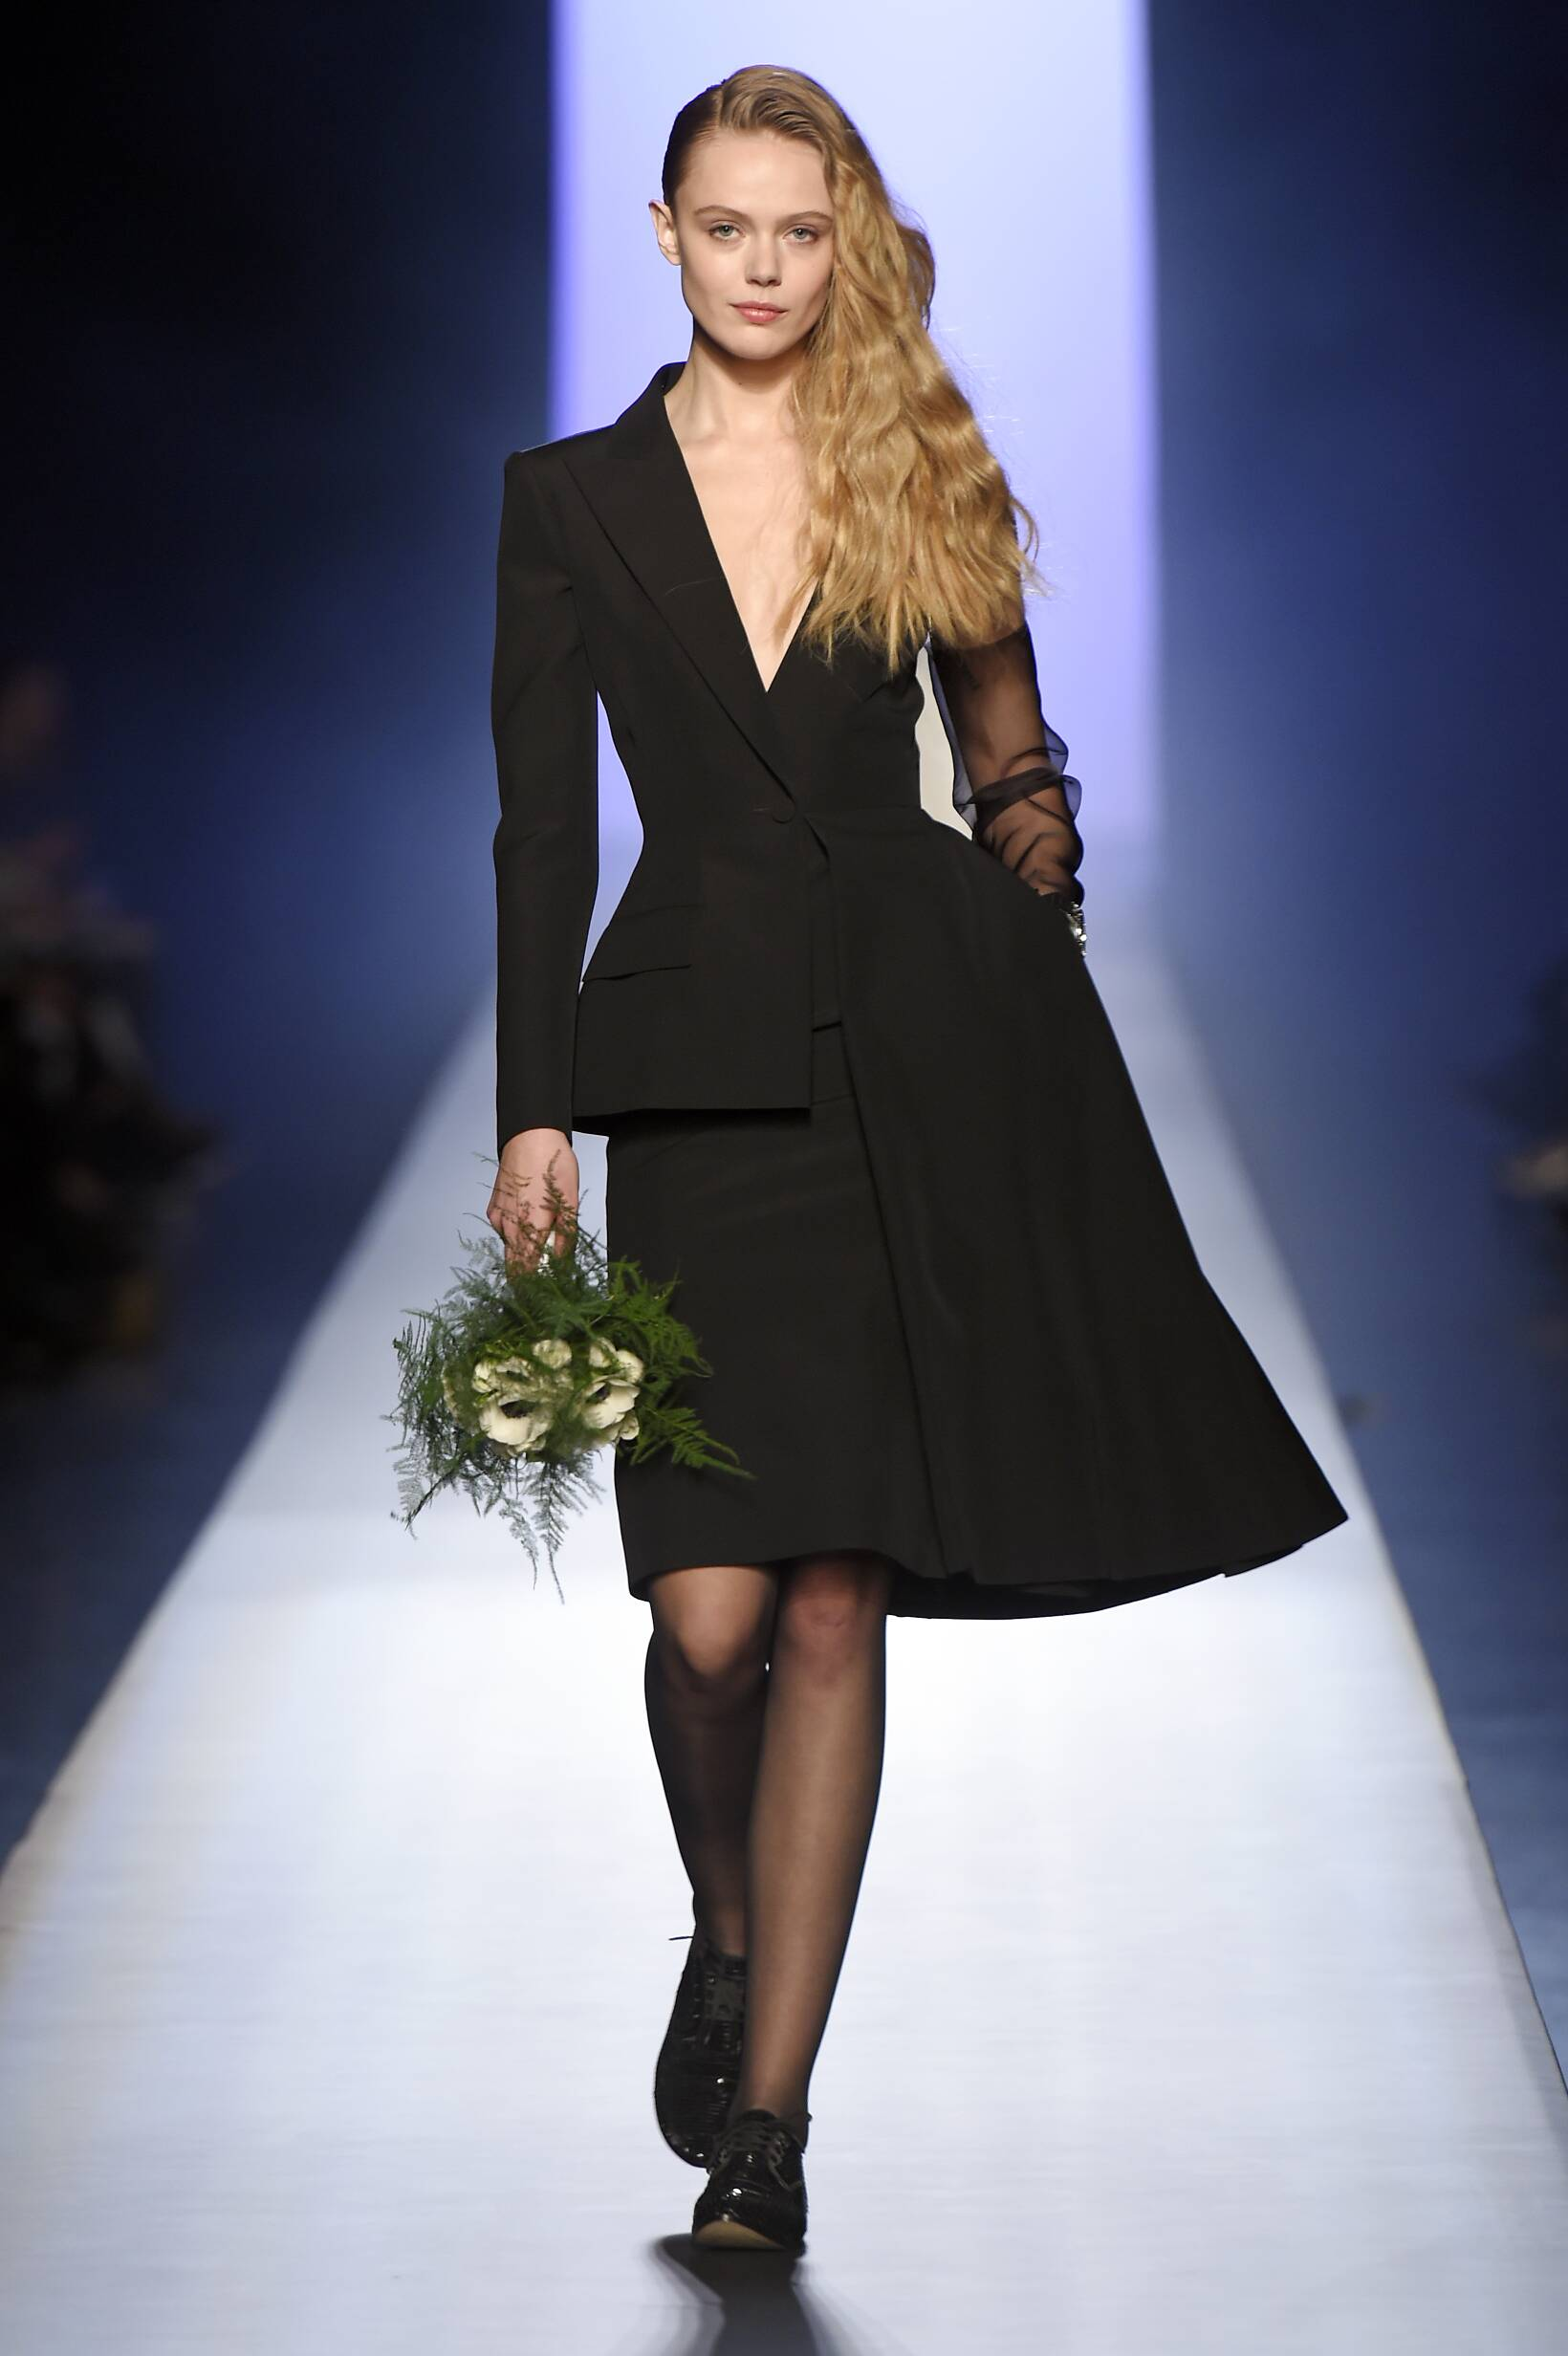 Spring 2015 Women Fashion Show Jean Paul Gaultier Haute Couture Collection